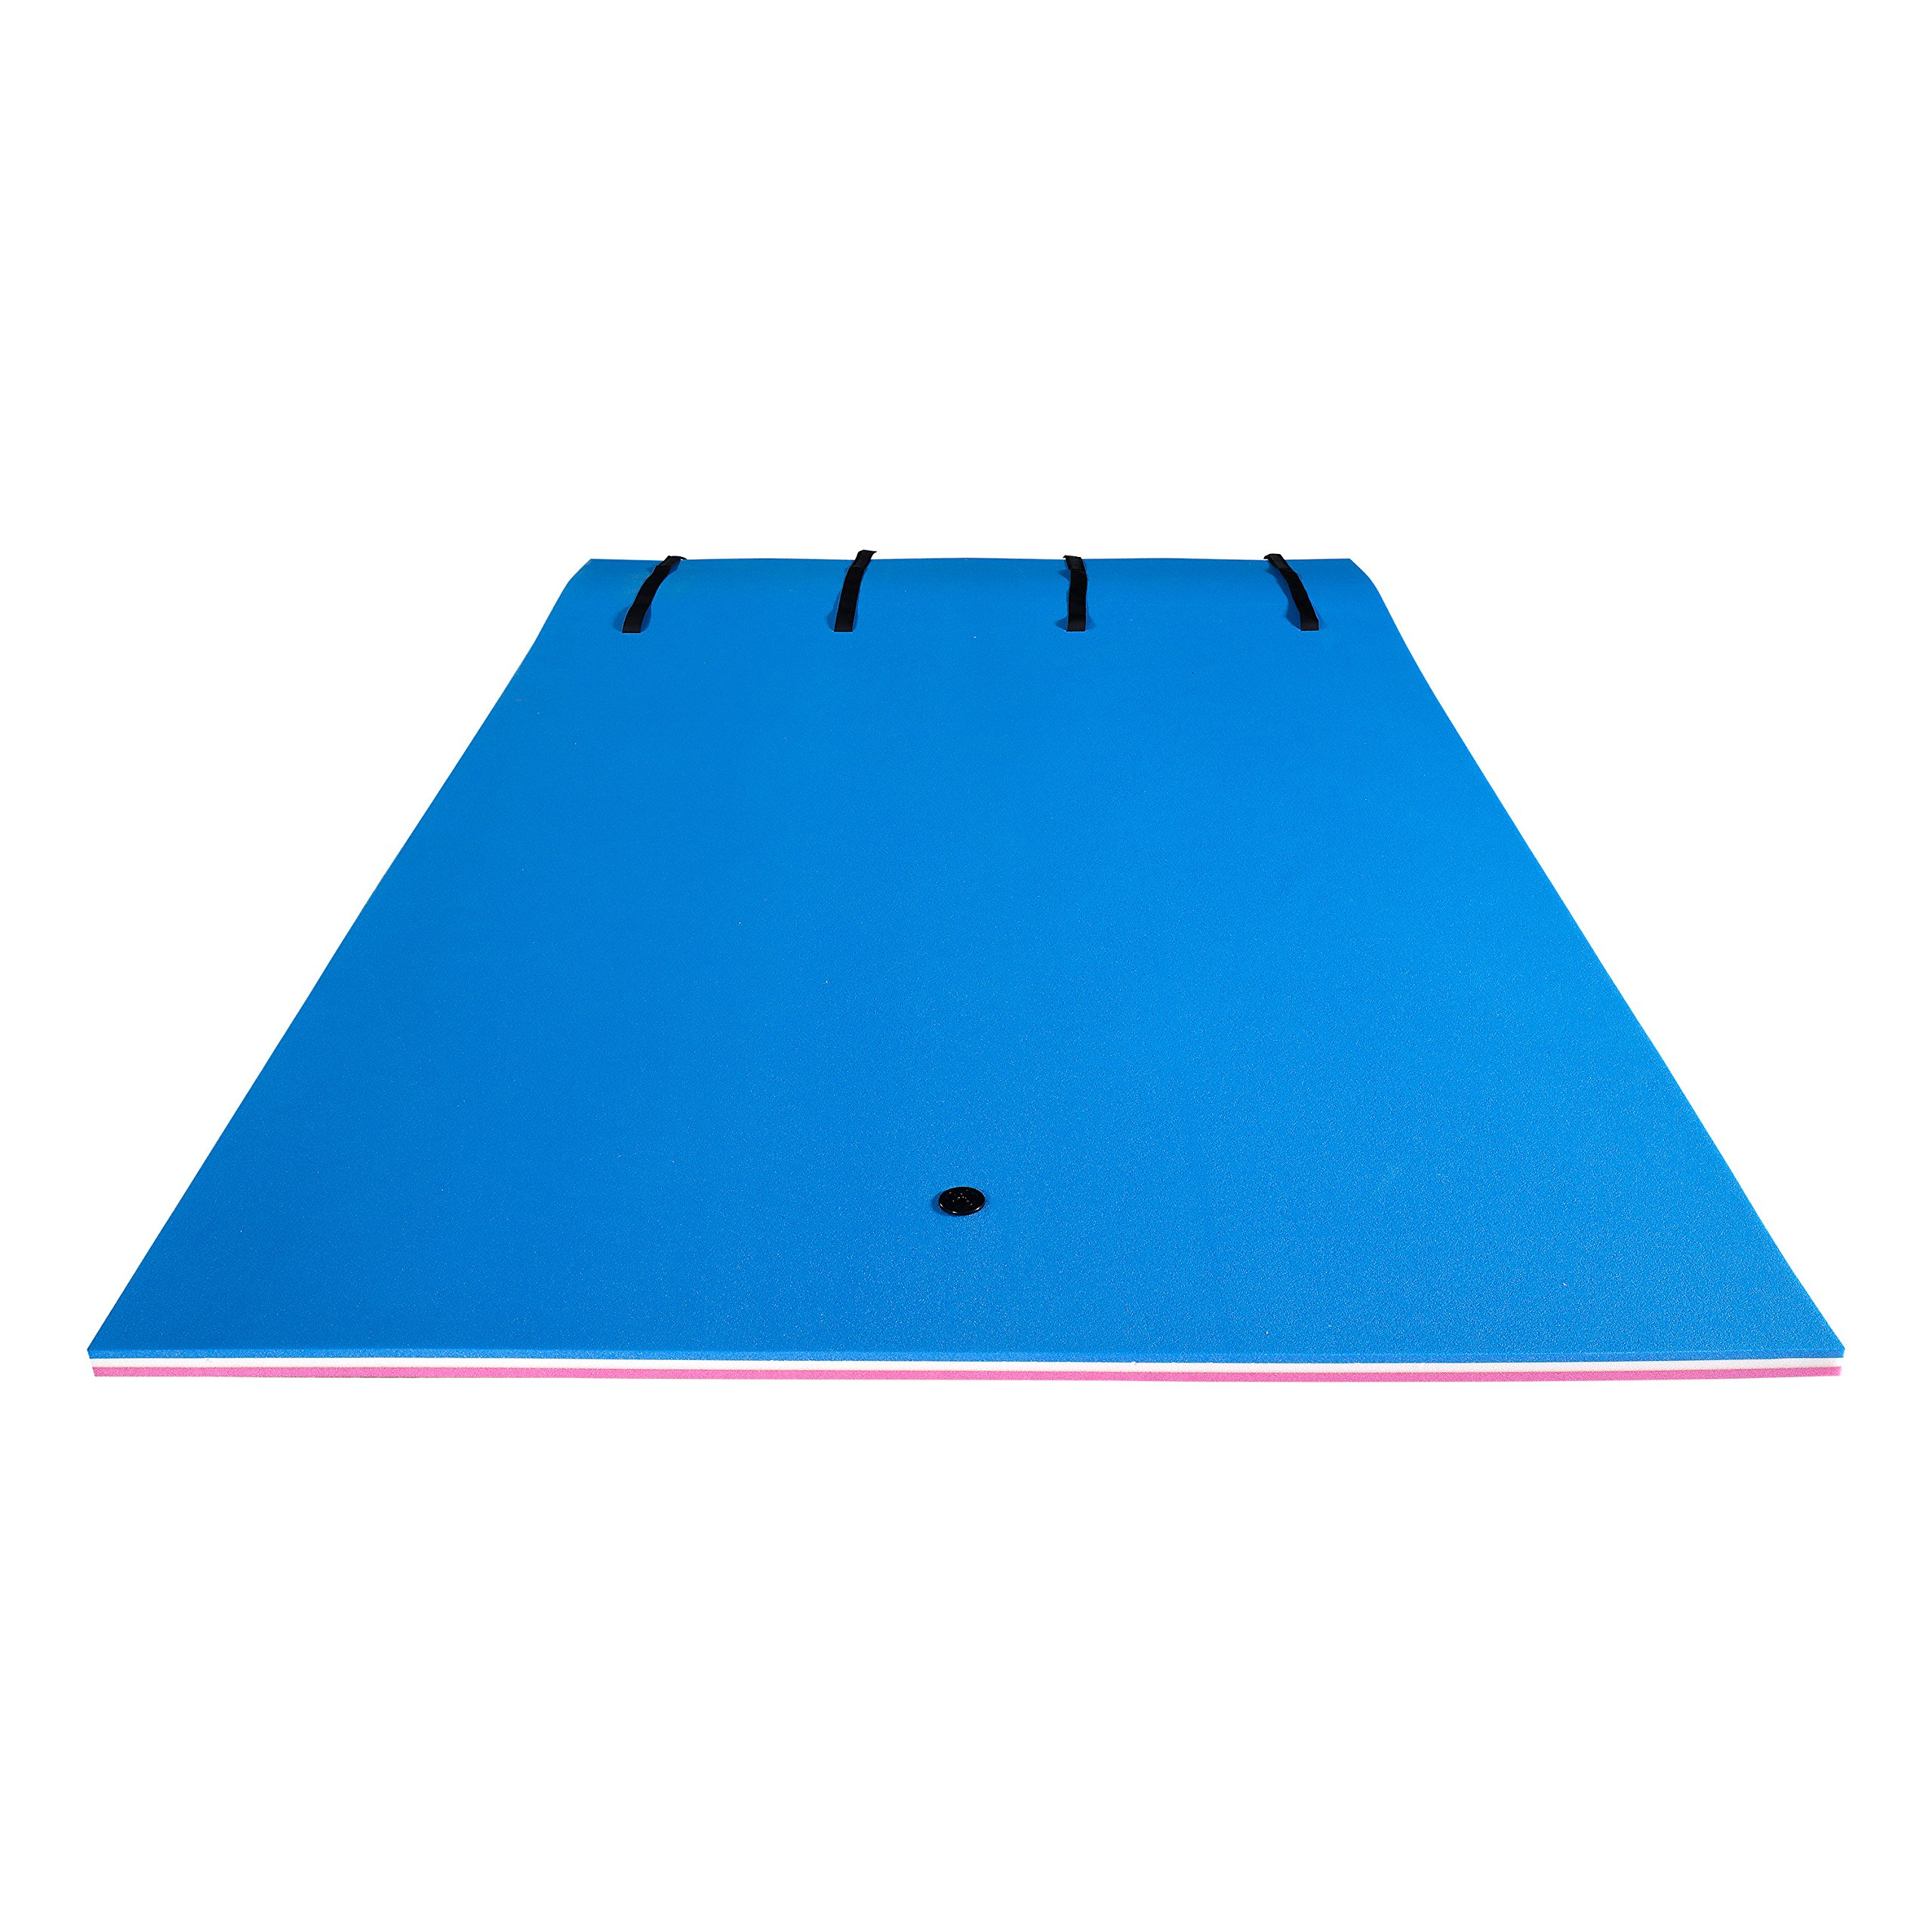 Fun Float Floating Water Mat, 9x6 feet, Swimming Island,Aqua Pad,Used in Lake,Pool,on Beach,for Relax, Vacation,Water Activities,Sports,Recreations,Parties,with Mooring Device,Rolled Packed, L-PWB by Fun Float (Image #7)